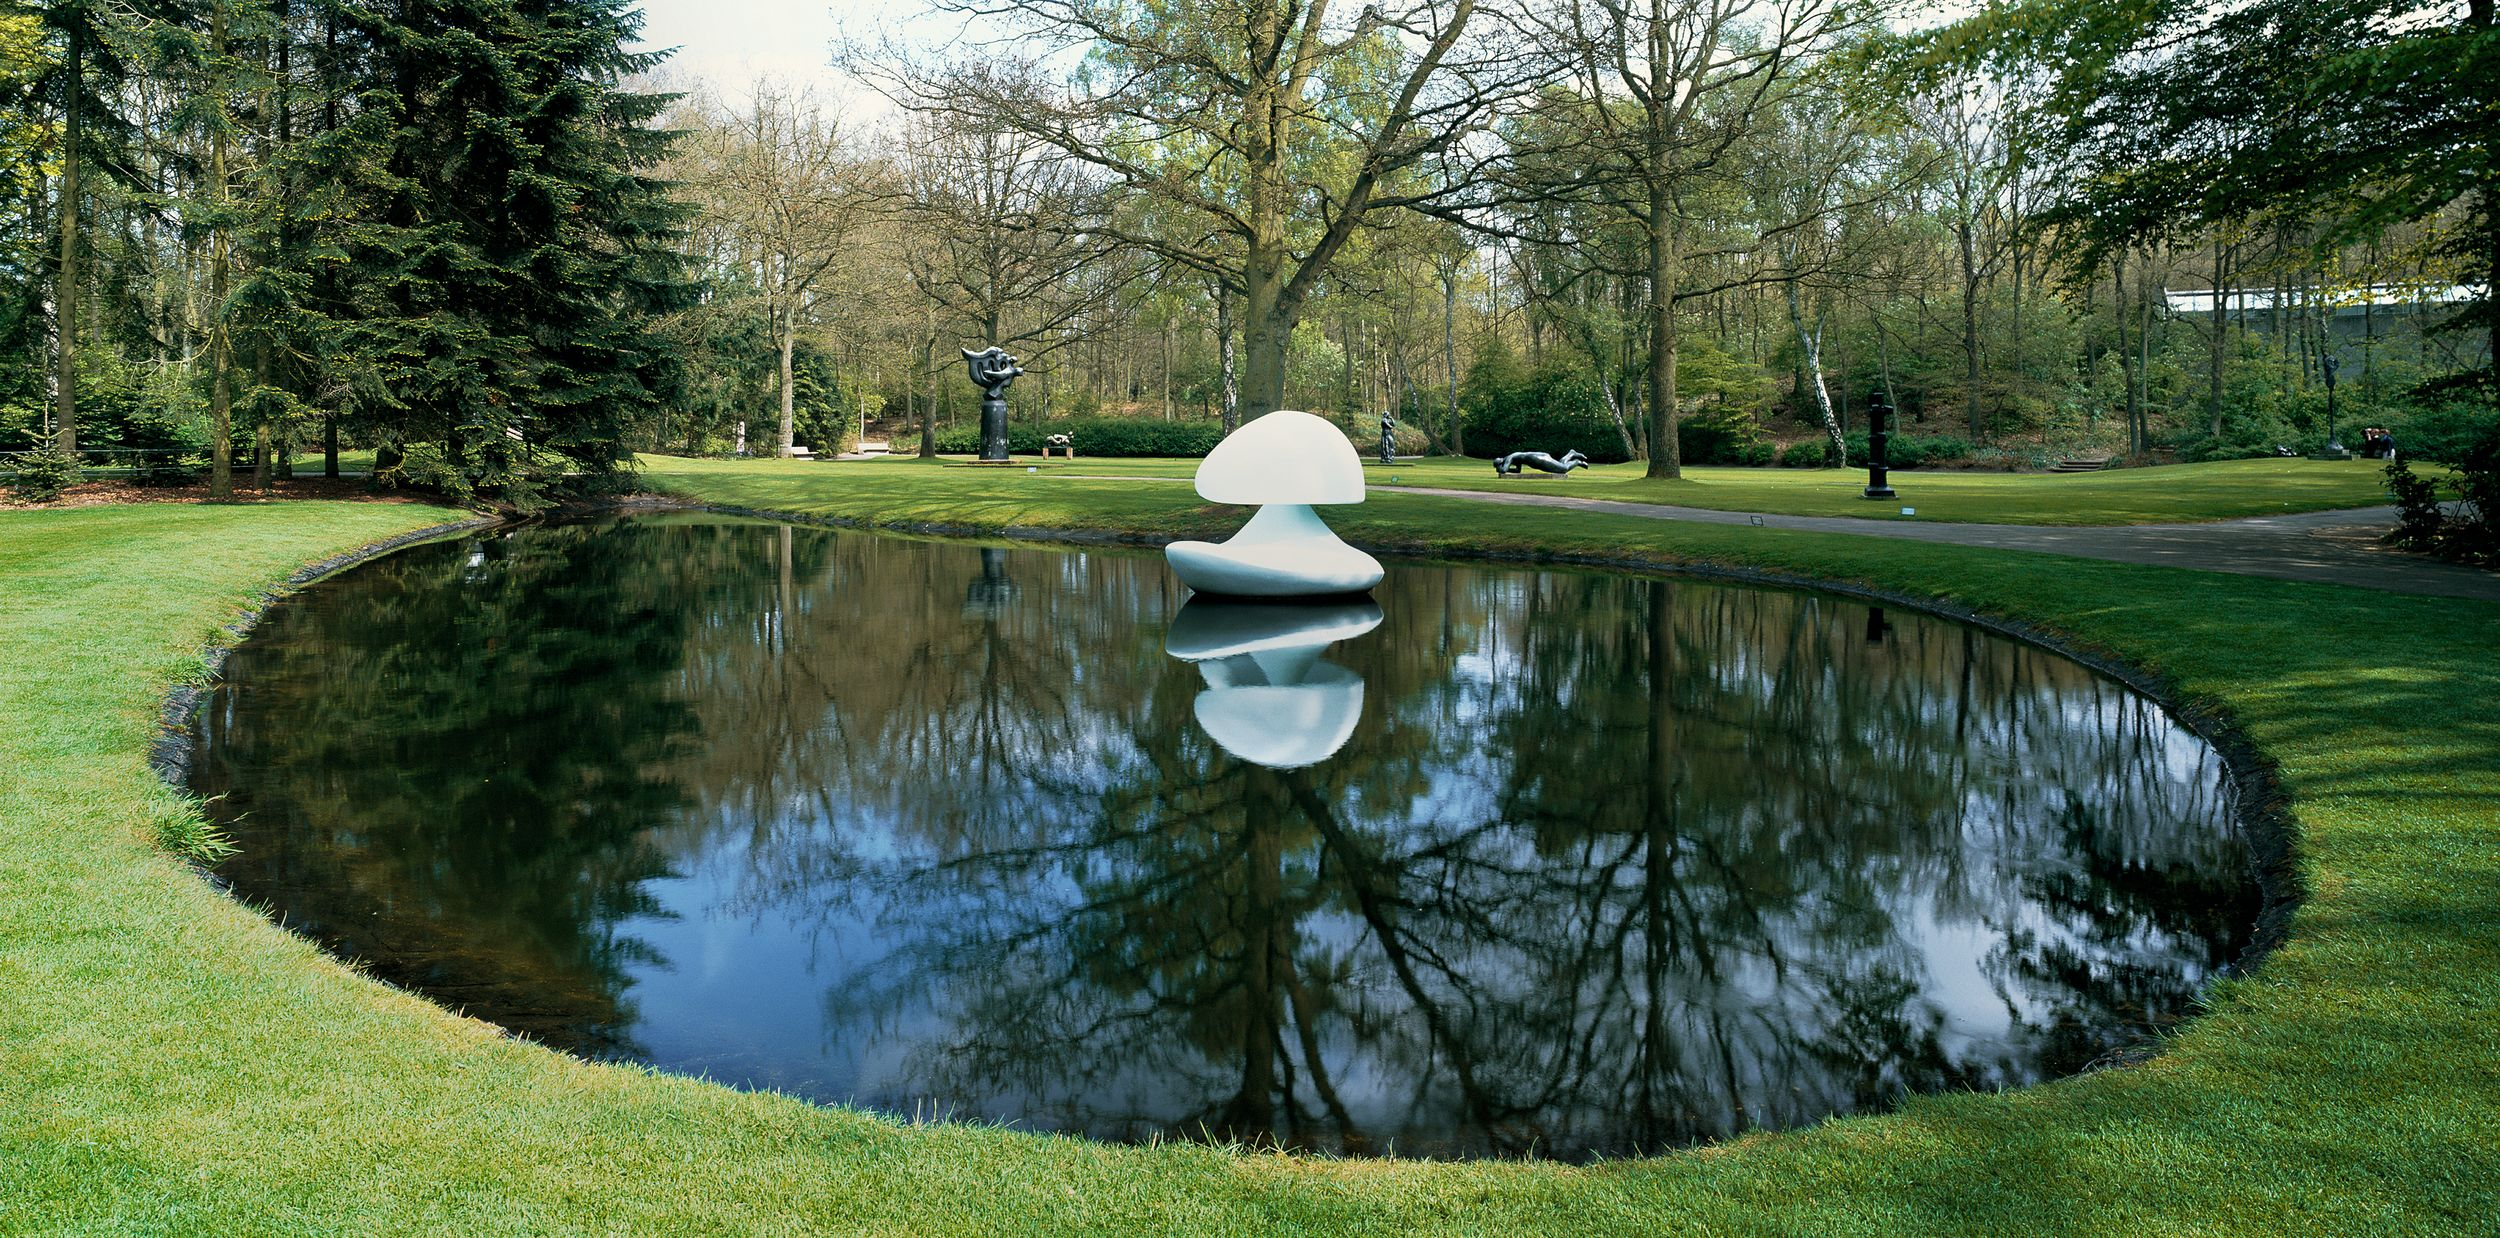 Marta Pan: Sculpture flottante 'Otterlo', 1960-1961 © Kröller-Müller Museum / copyright artist: contact Pictoright / photo: Cary Markerink